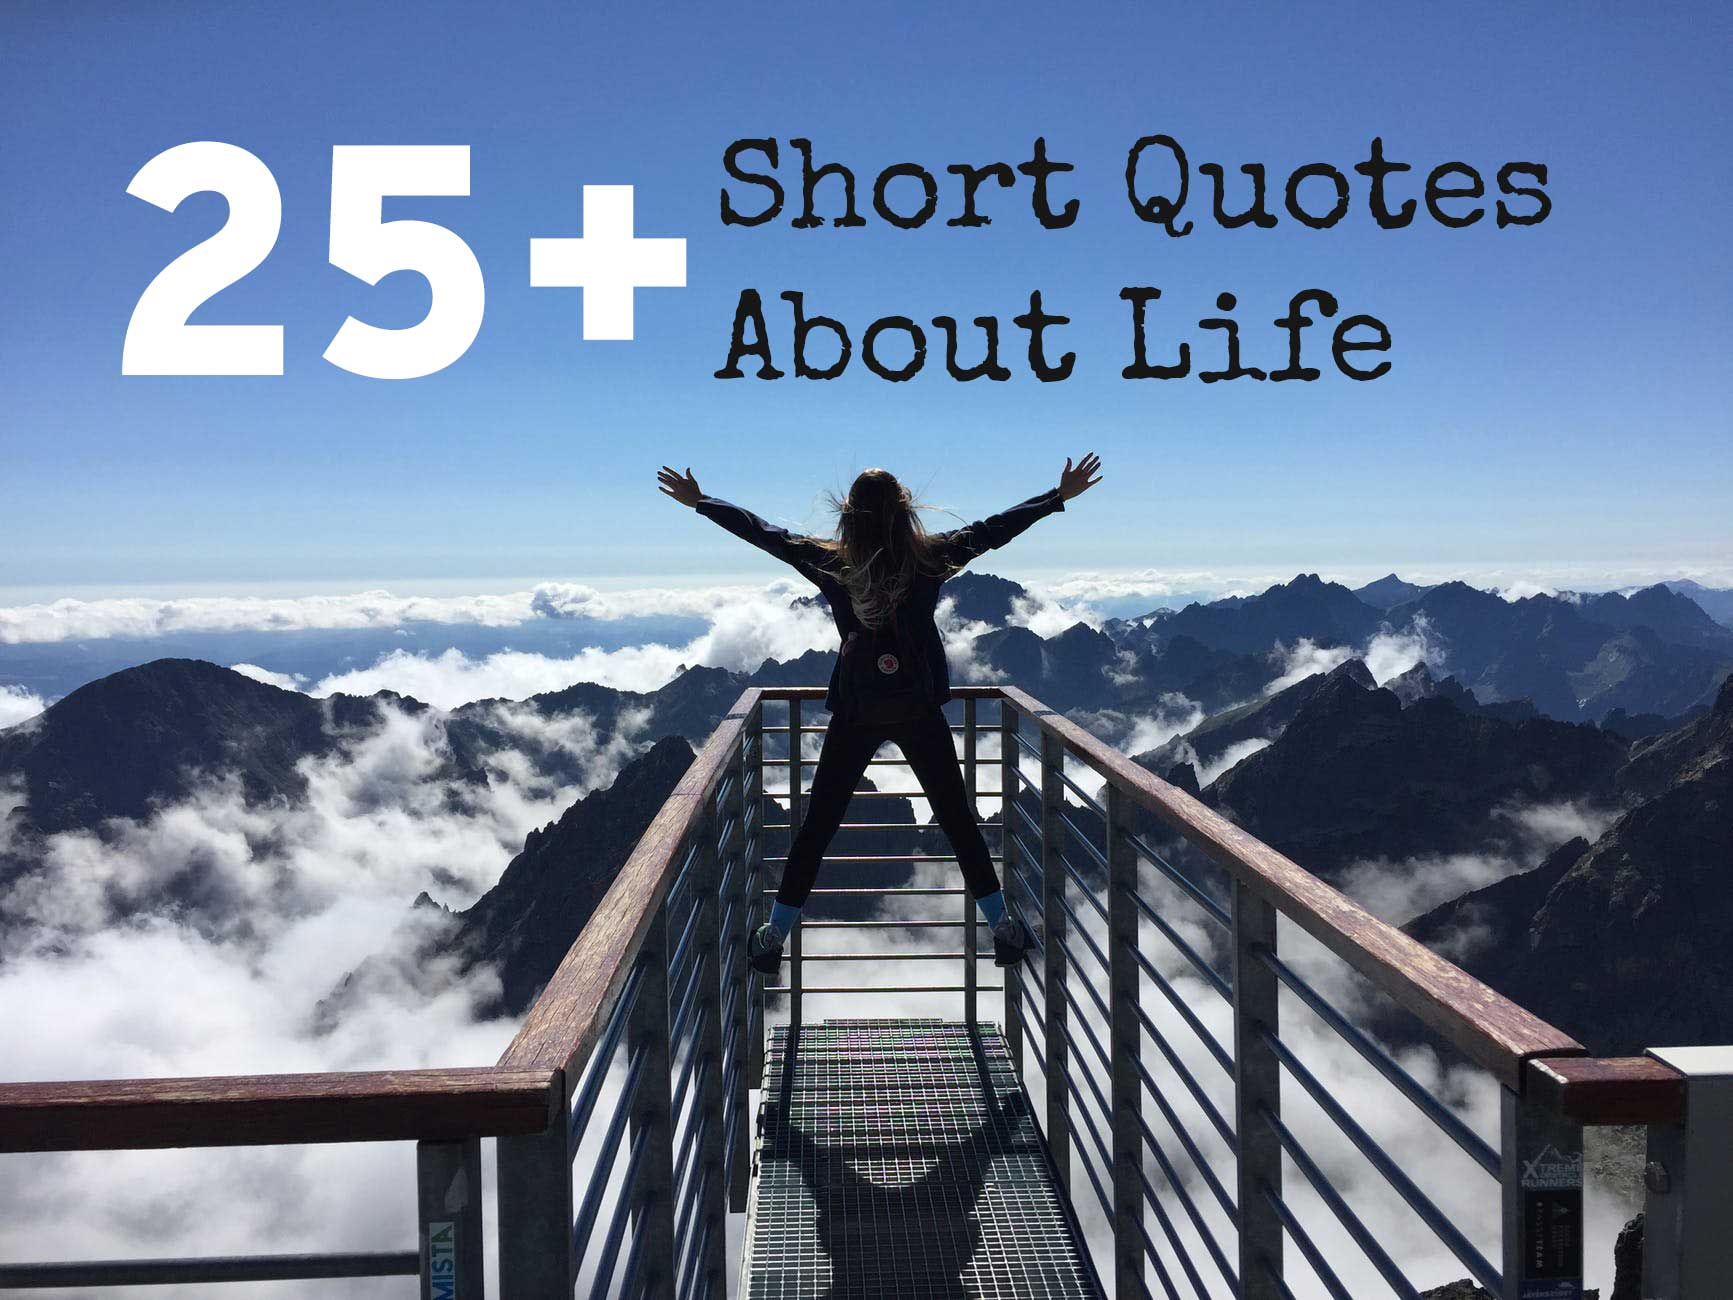 25+-short-quotes-and-sayings-about-life